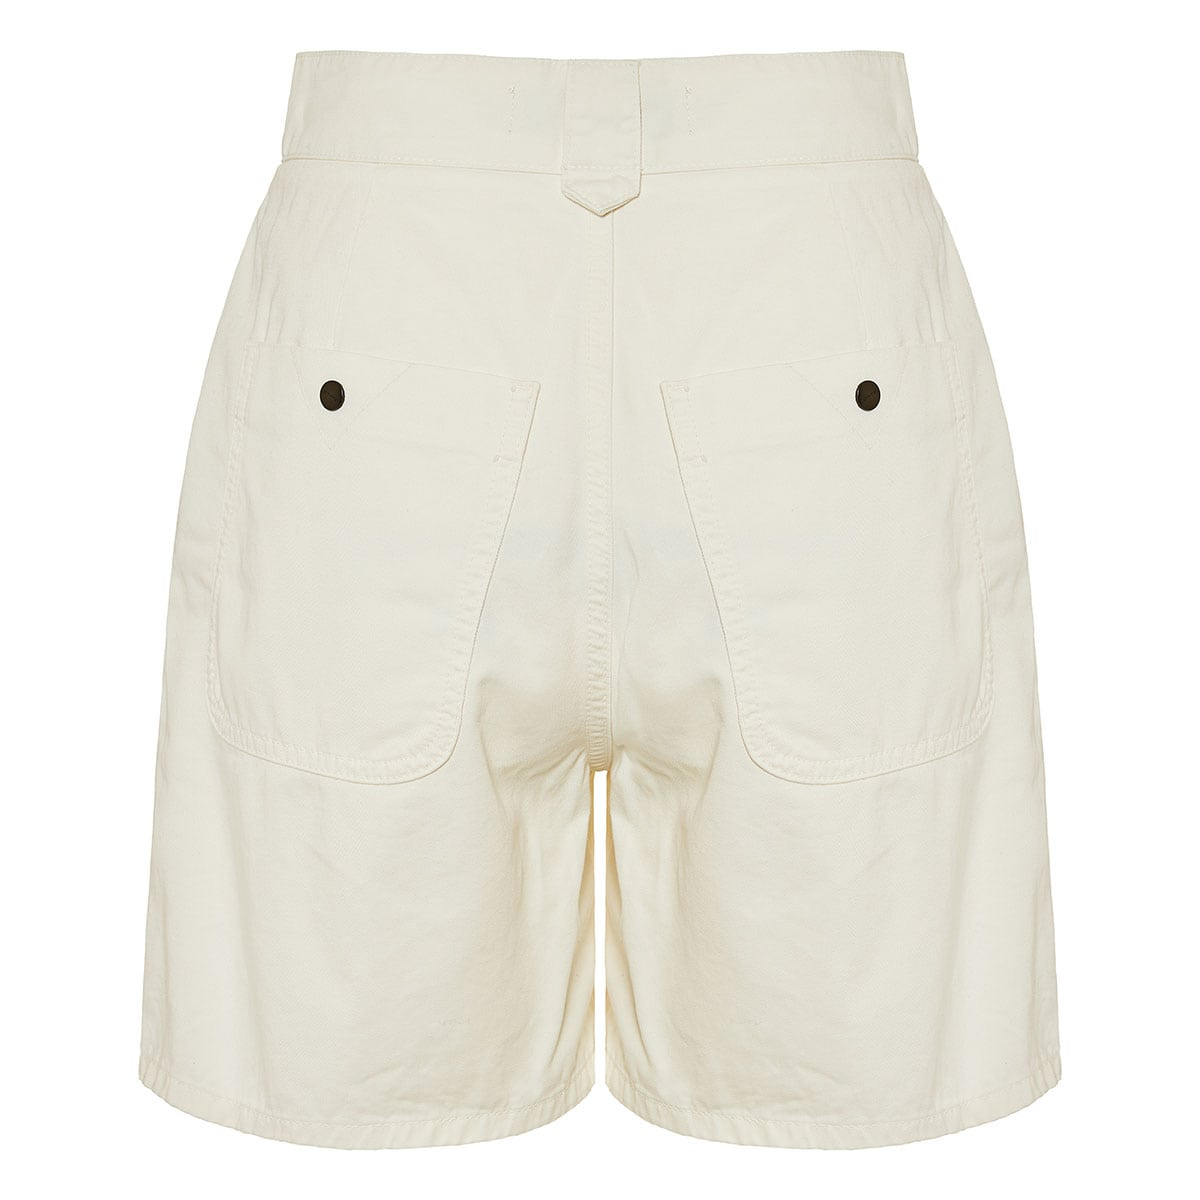 High-waist shorts with embroidered detail